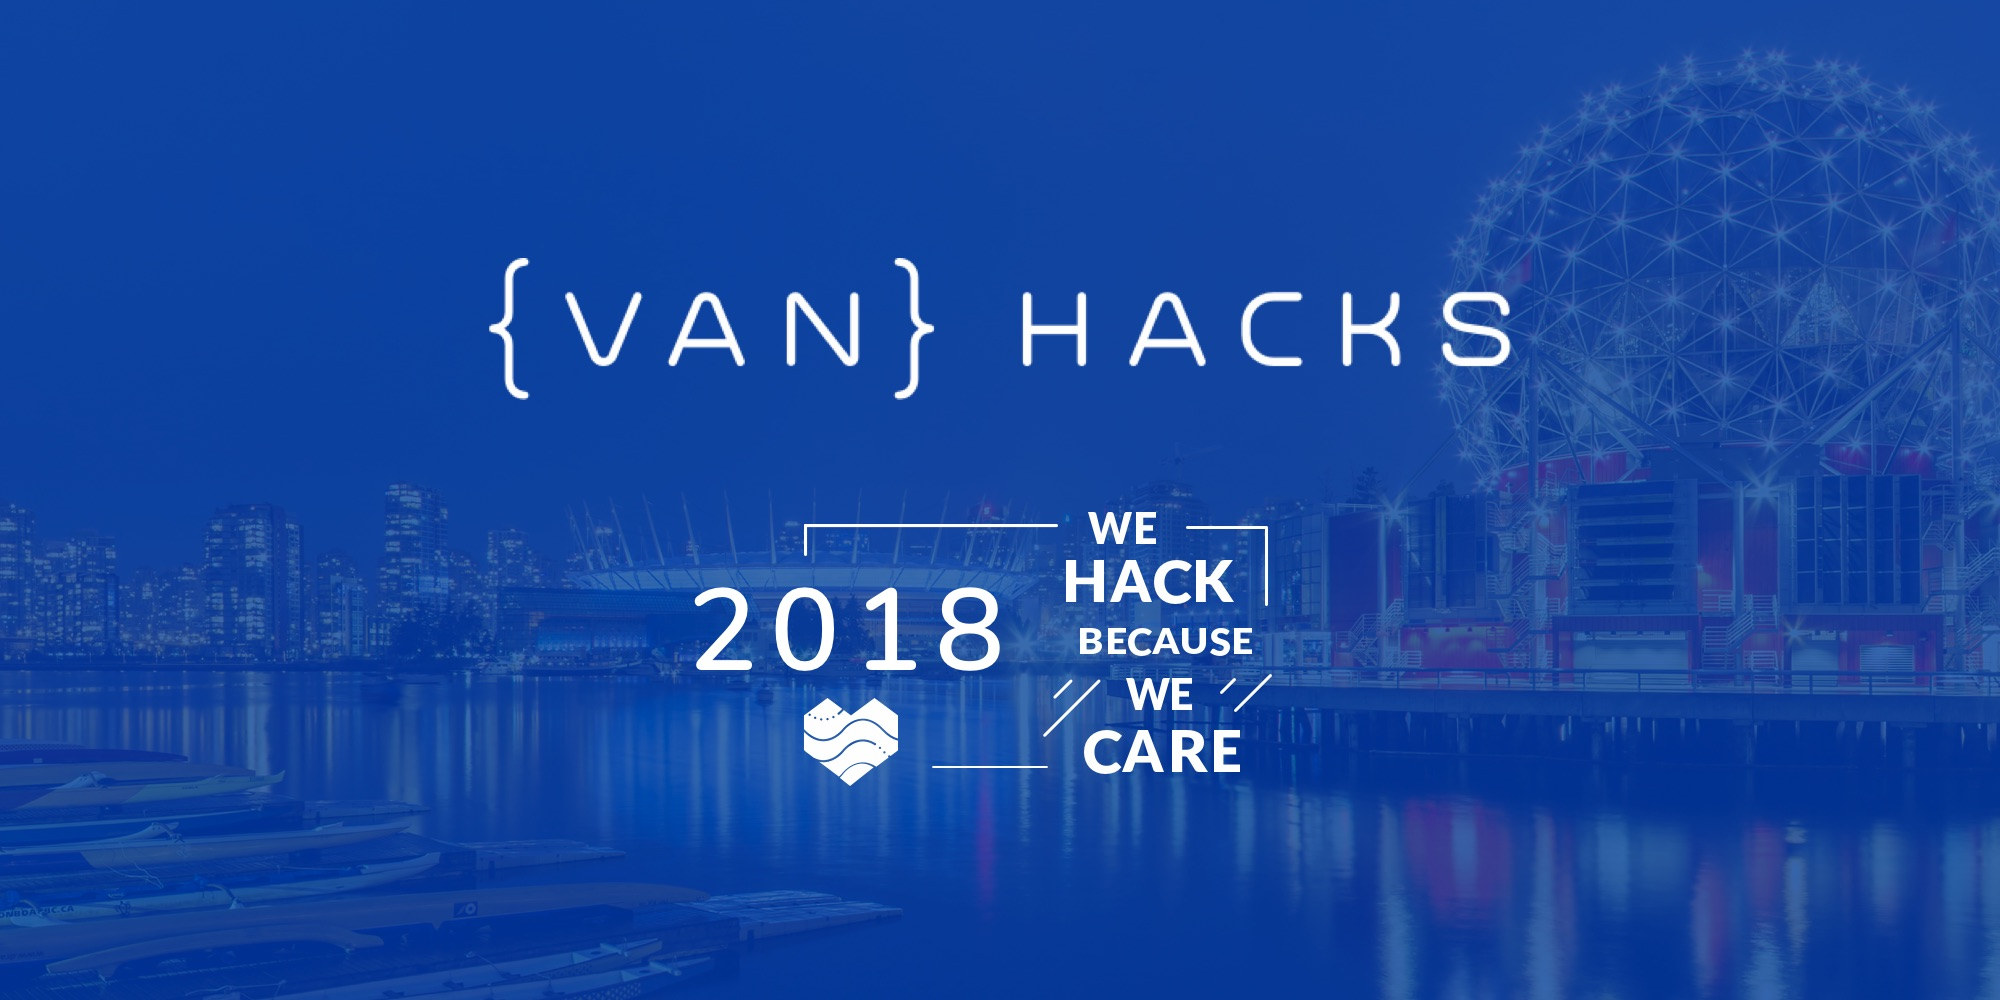 VanHacks: a hackathon for social good